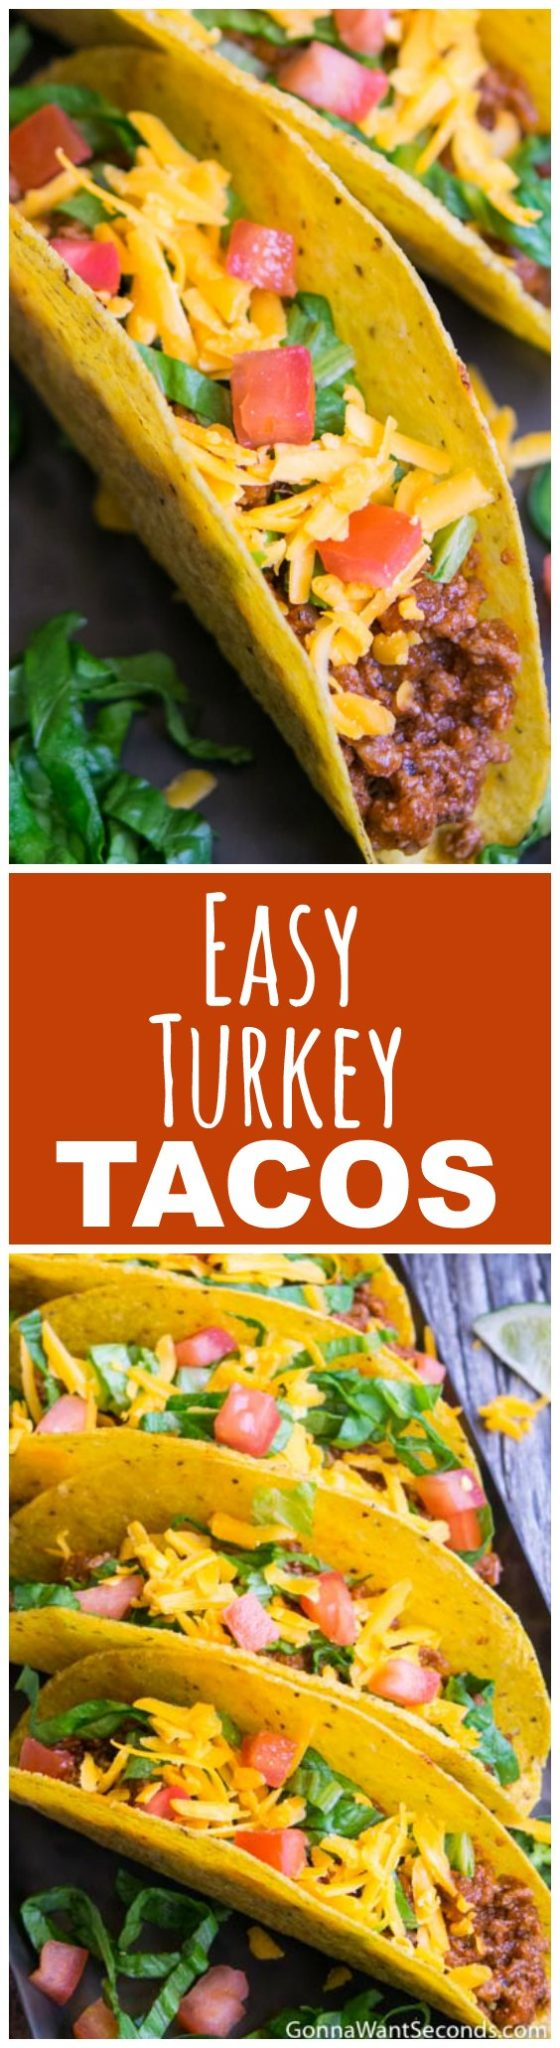 These healthy ground Turkey Tacos are so tasty and quick to put together ANY night can be taco night! Perfect for when you want a healthy delicious dinner ready in less than 20 minutes. The whole family will love these so skip the